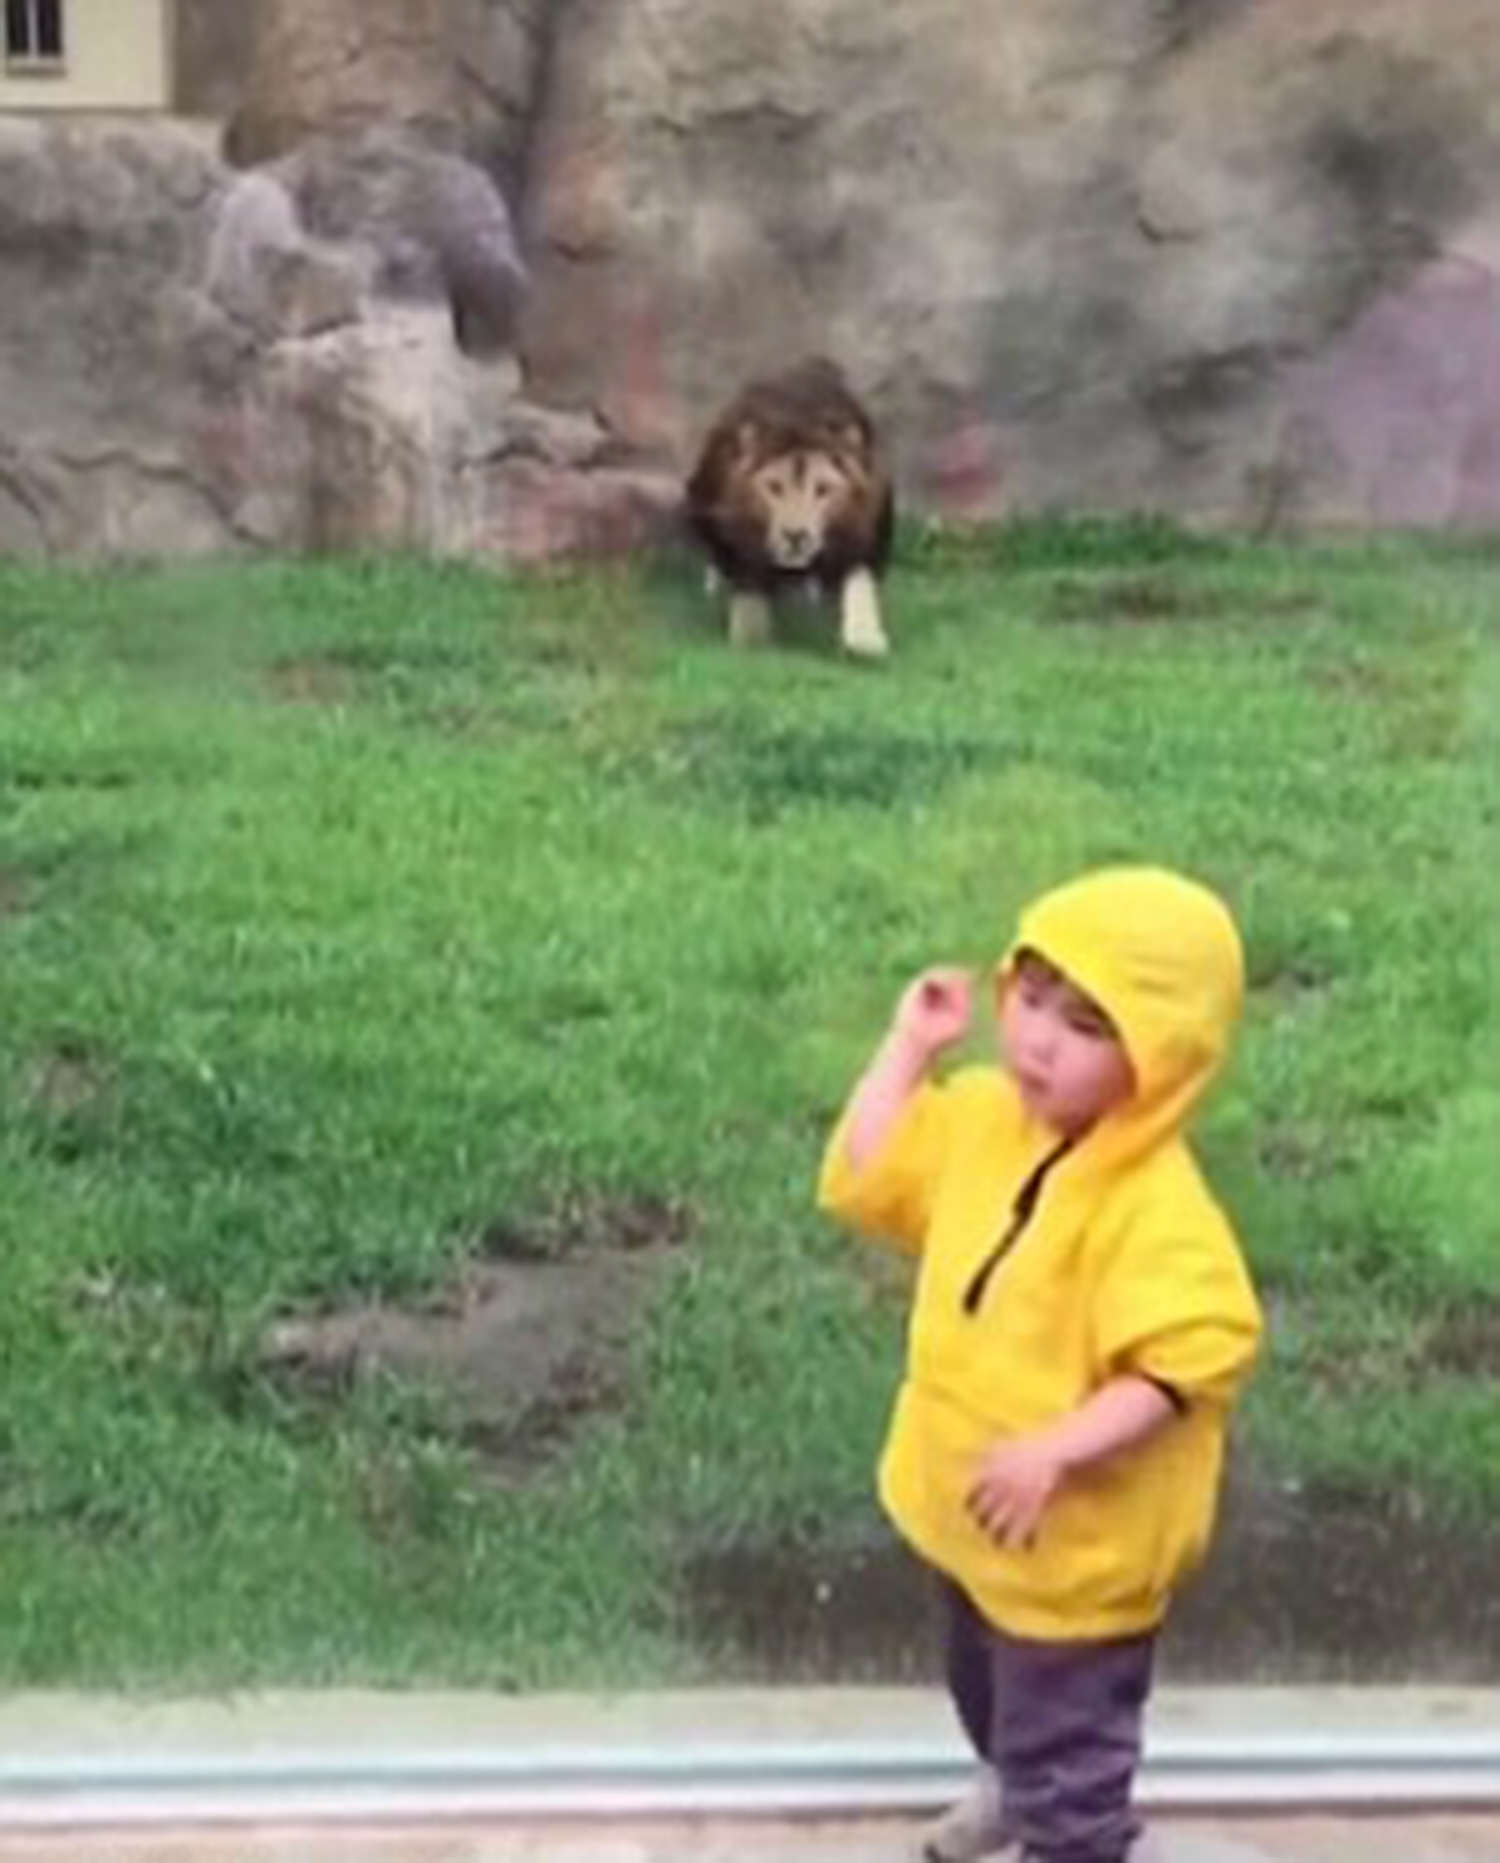 animal attack in zoo